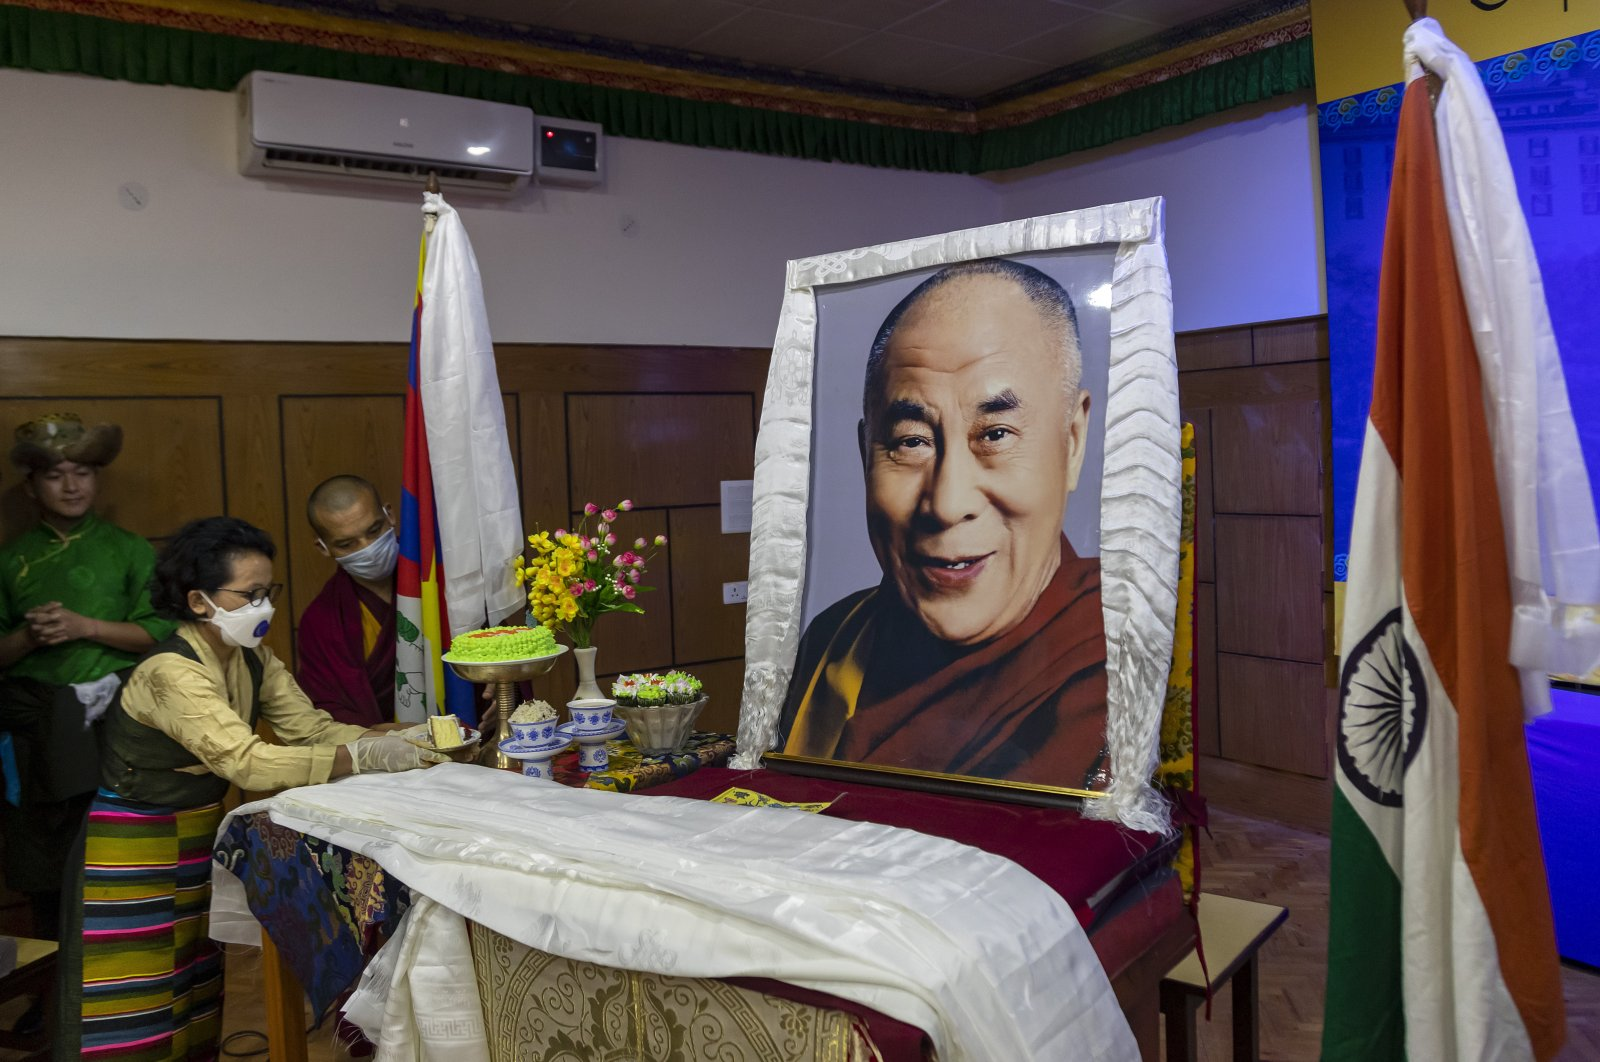 An exile Tibetan offers a piece of cake to a portrait of her spiritual leader the Dalai Lama to mark her leader's 85th birthday in Dharmsala, India, July 6, 2020. (AP Photo)